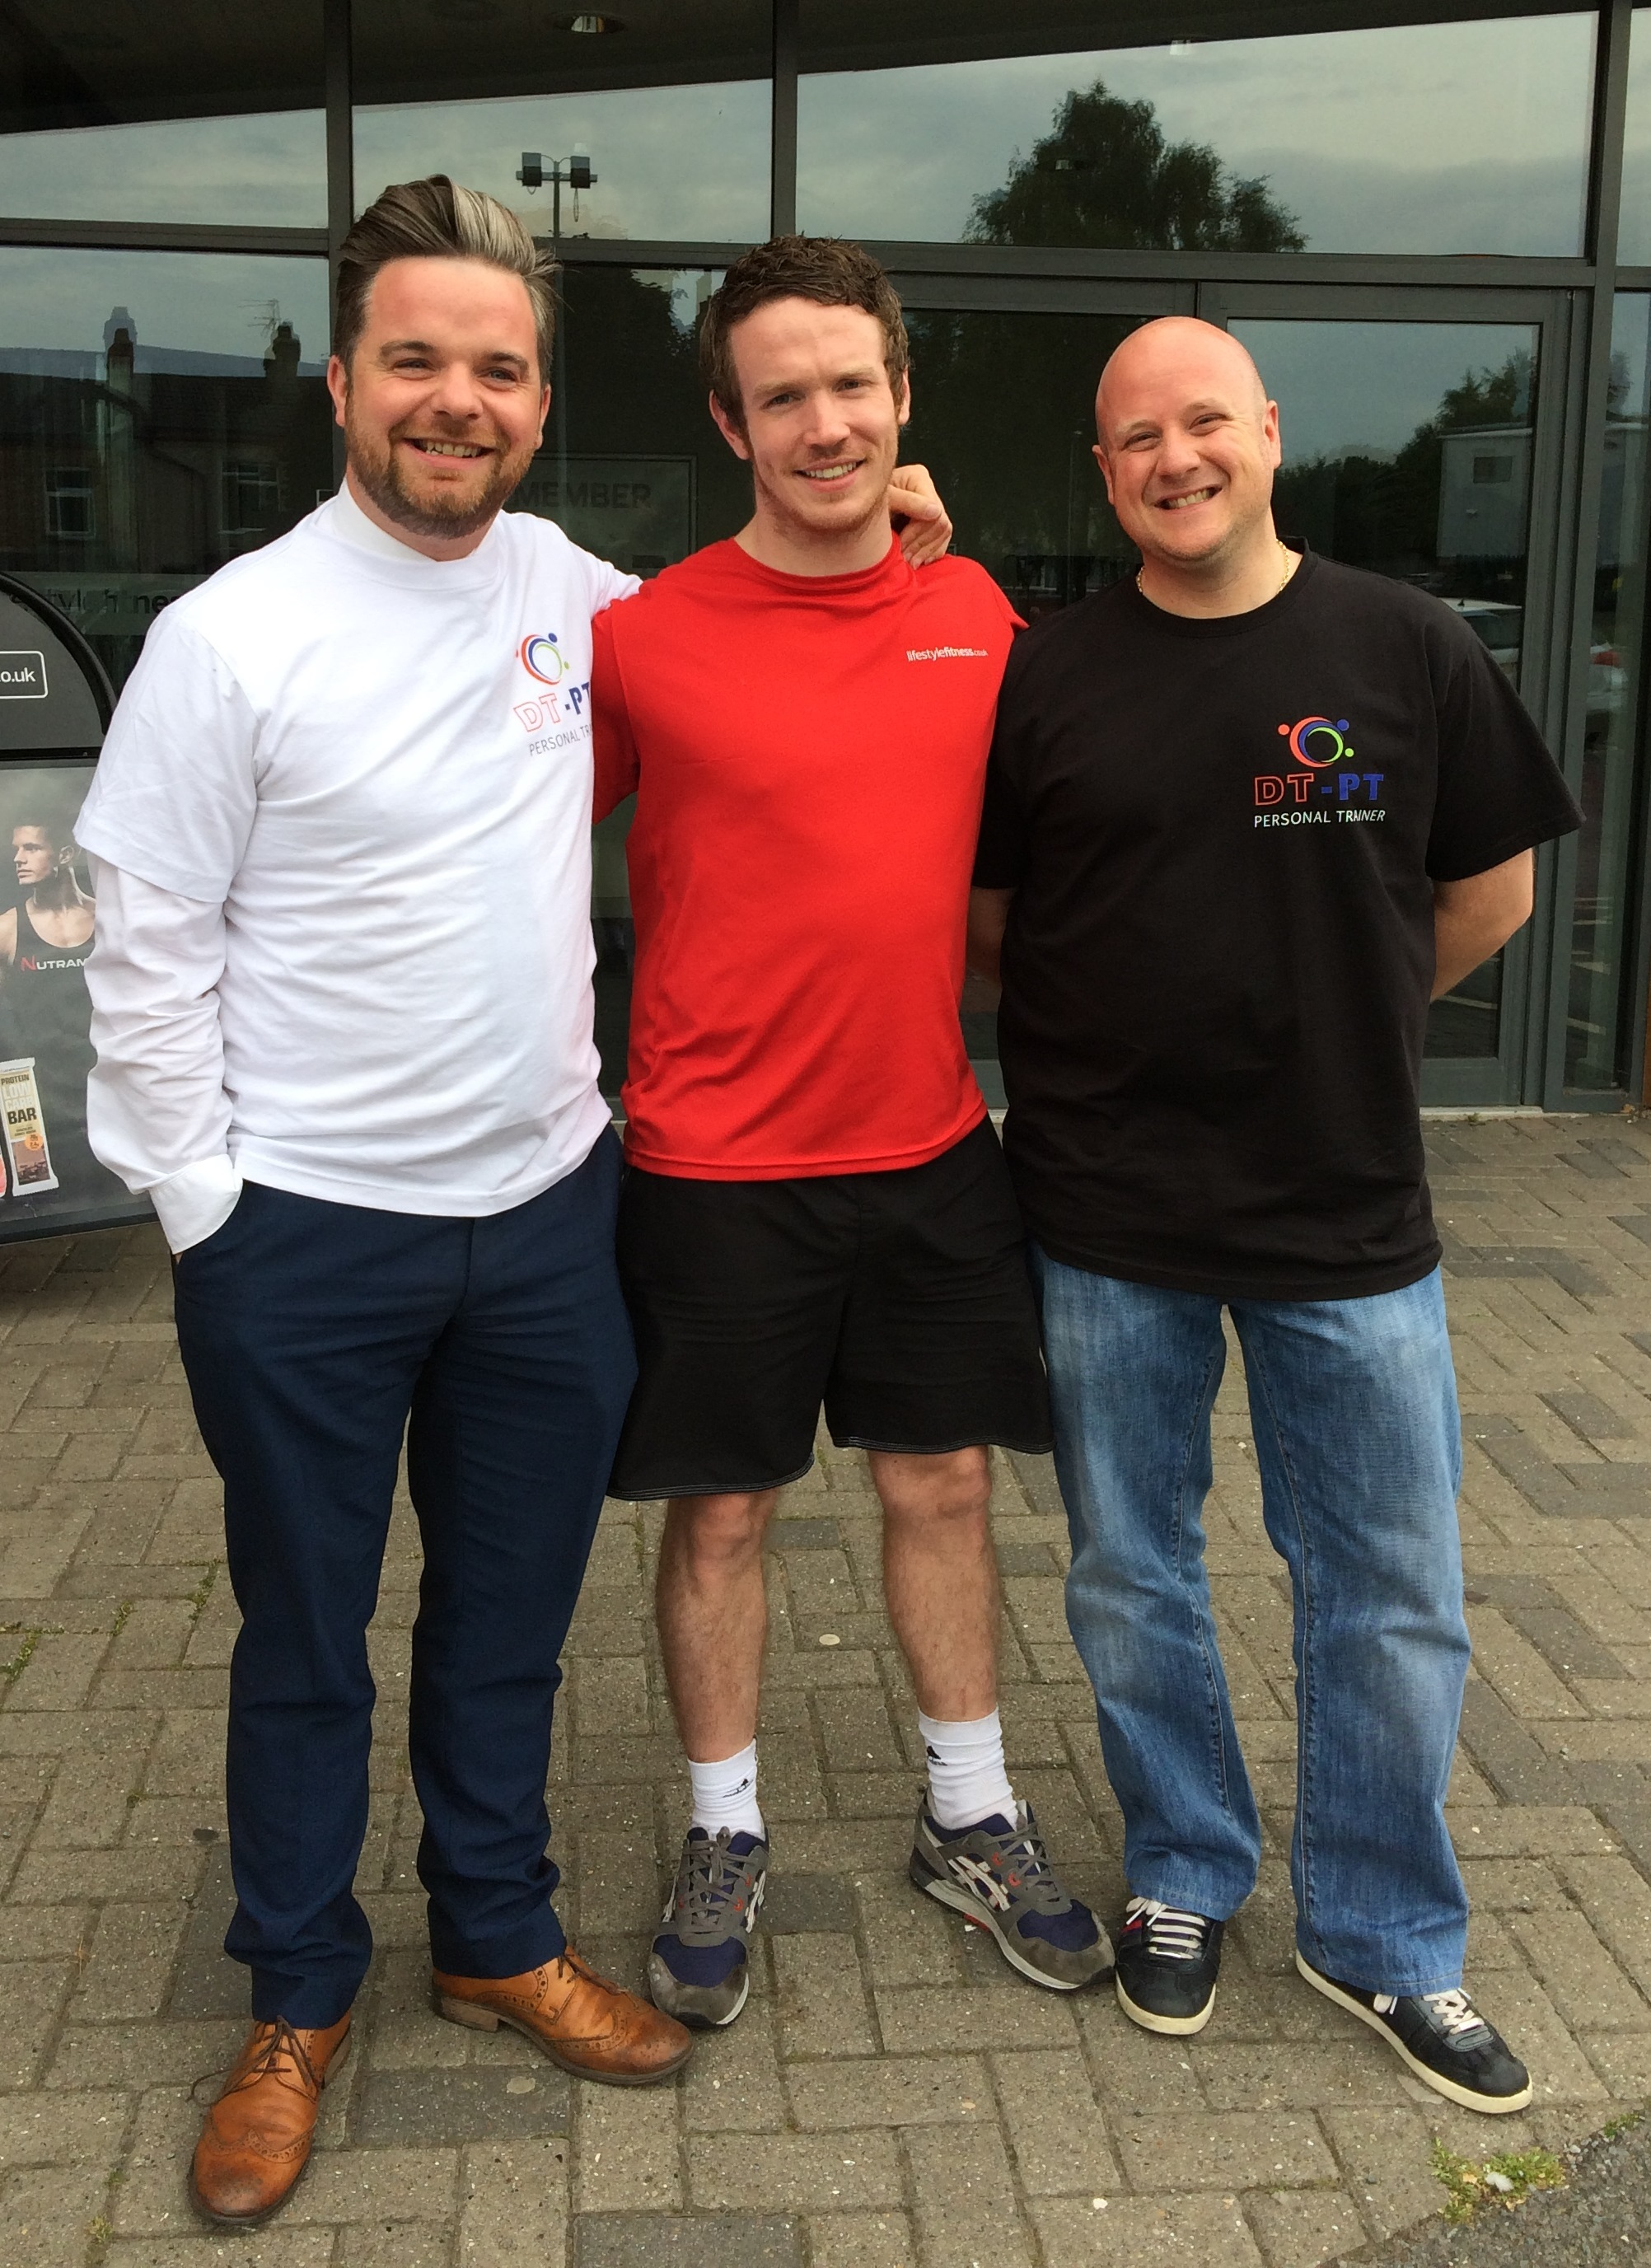 FUNDRAISERS: From left to right, Phillip Whitehead, David Thwaites and Andrew Rowley